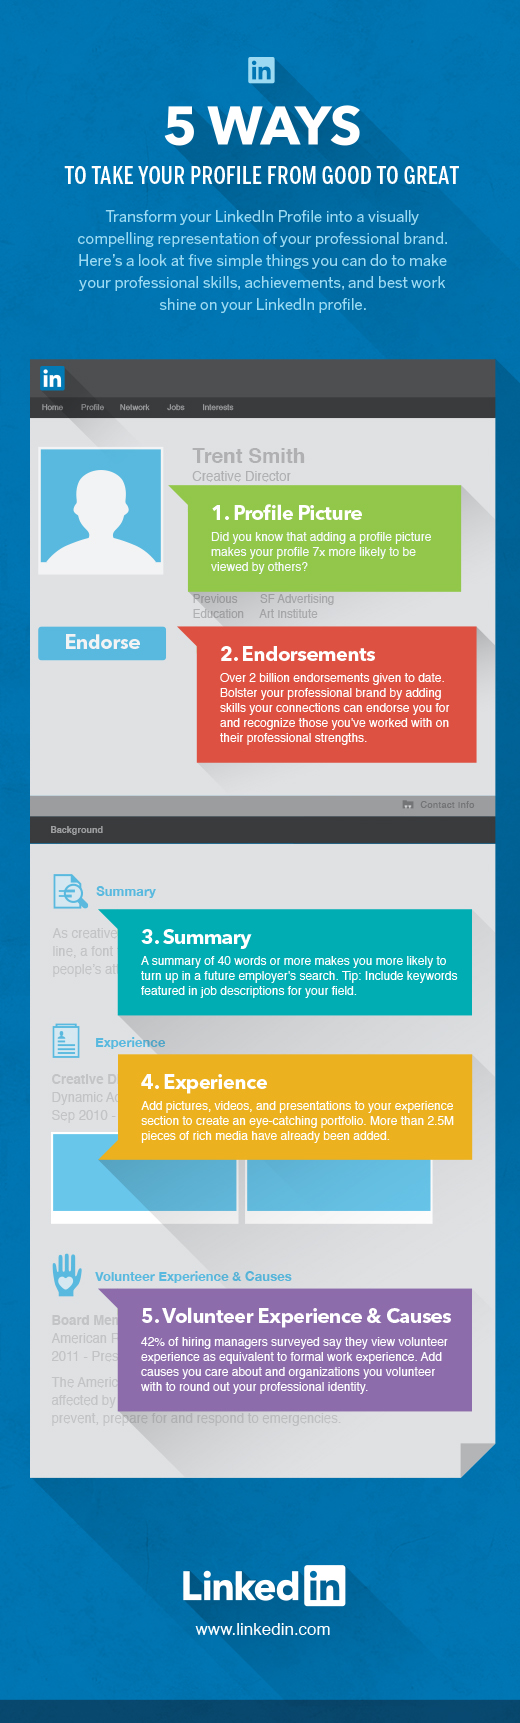 5-LinkedIn-Profile-Tips-Infographic